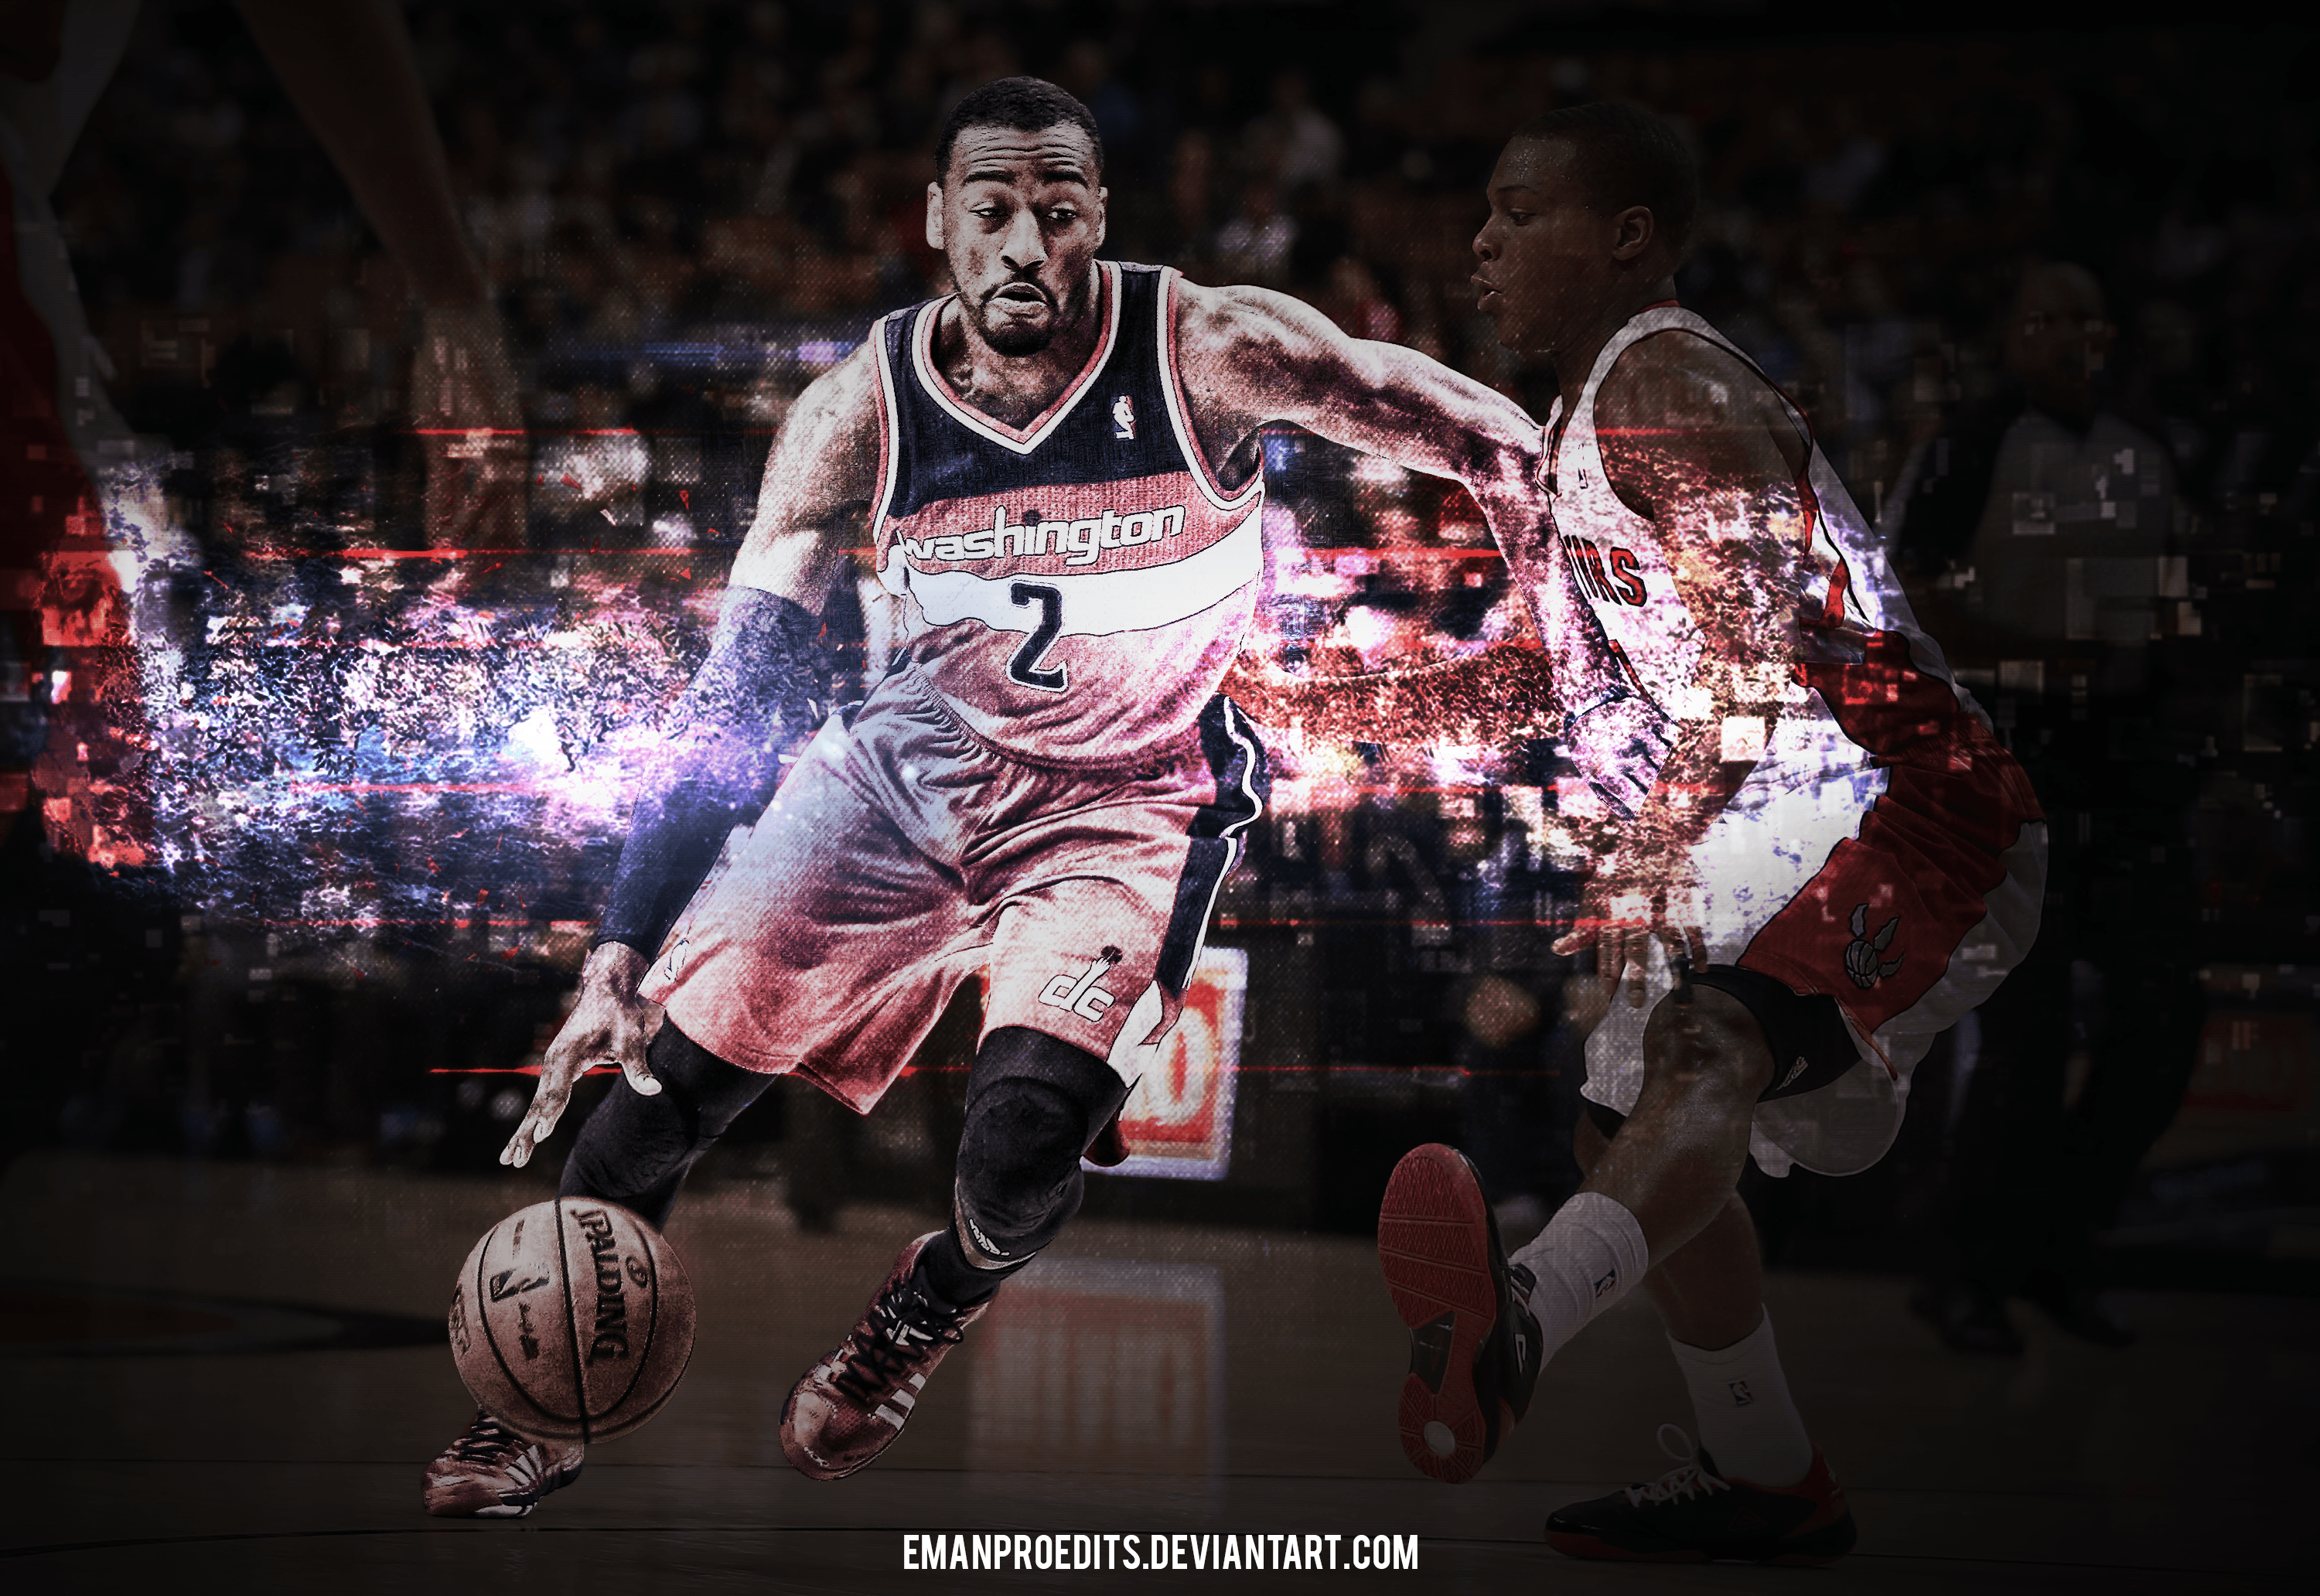 johnwall - DeviantArt